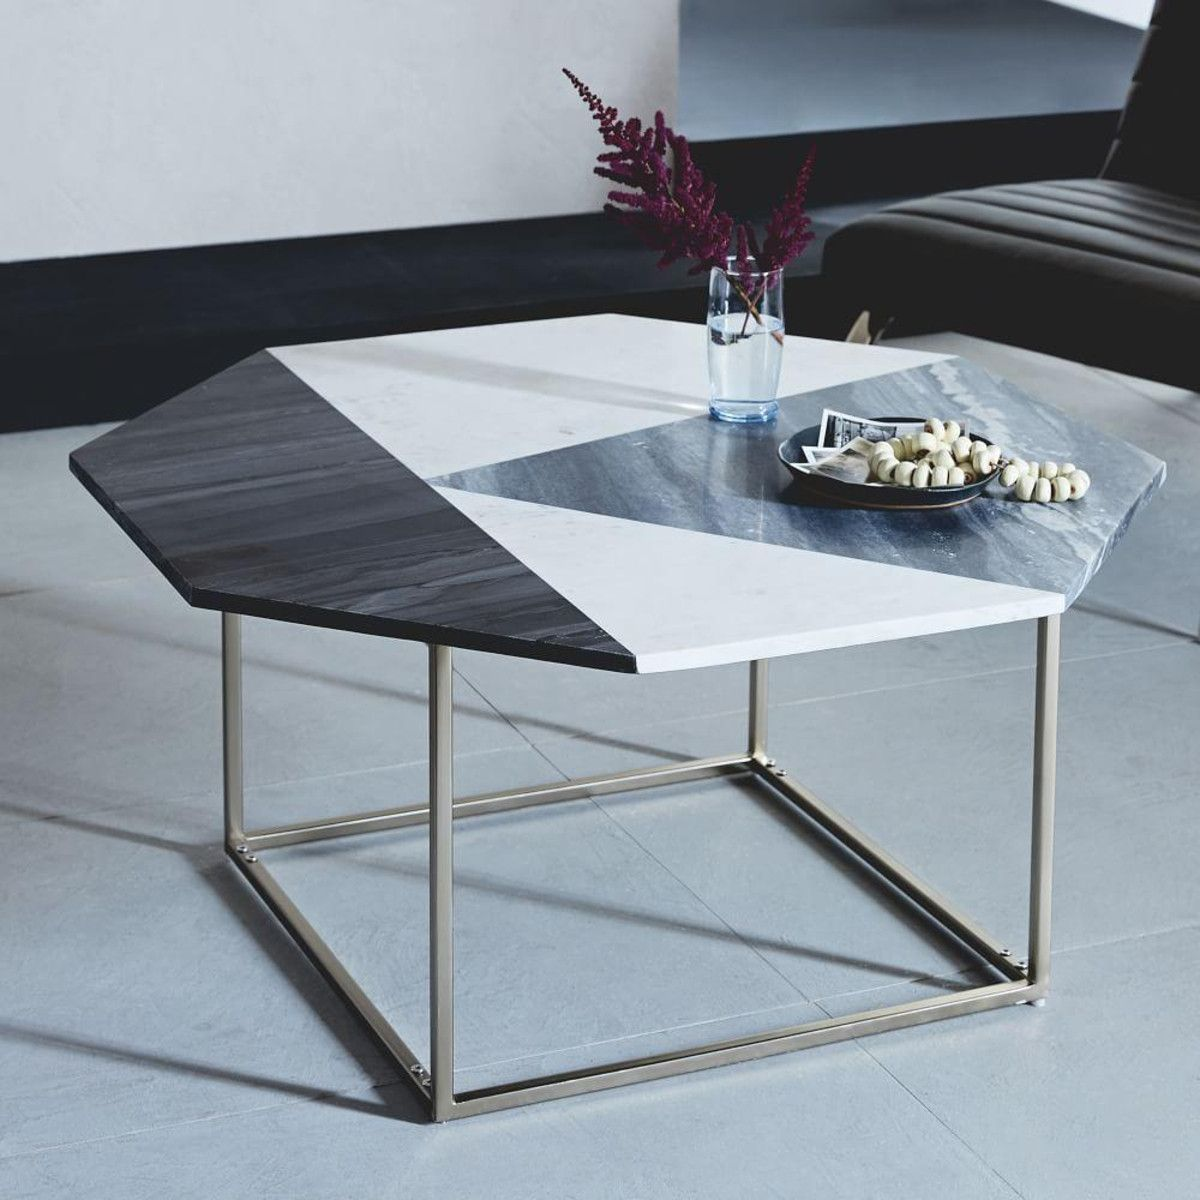 With Its Octagonal Top And Geometric Mix Of Marble Our Marquetry - Colorful judd side table with different variations